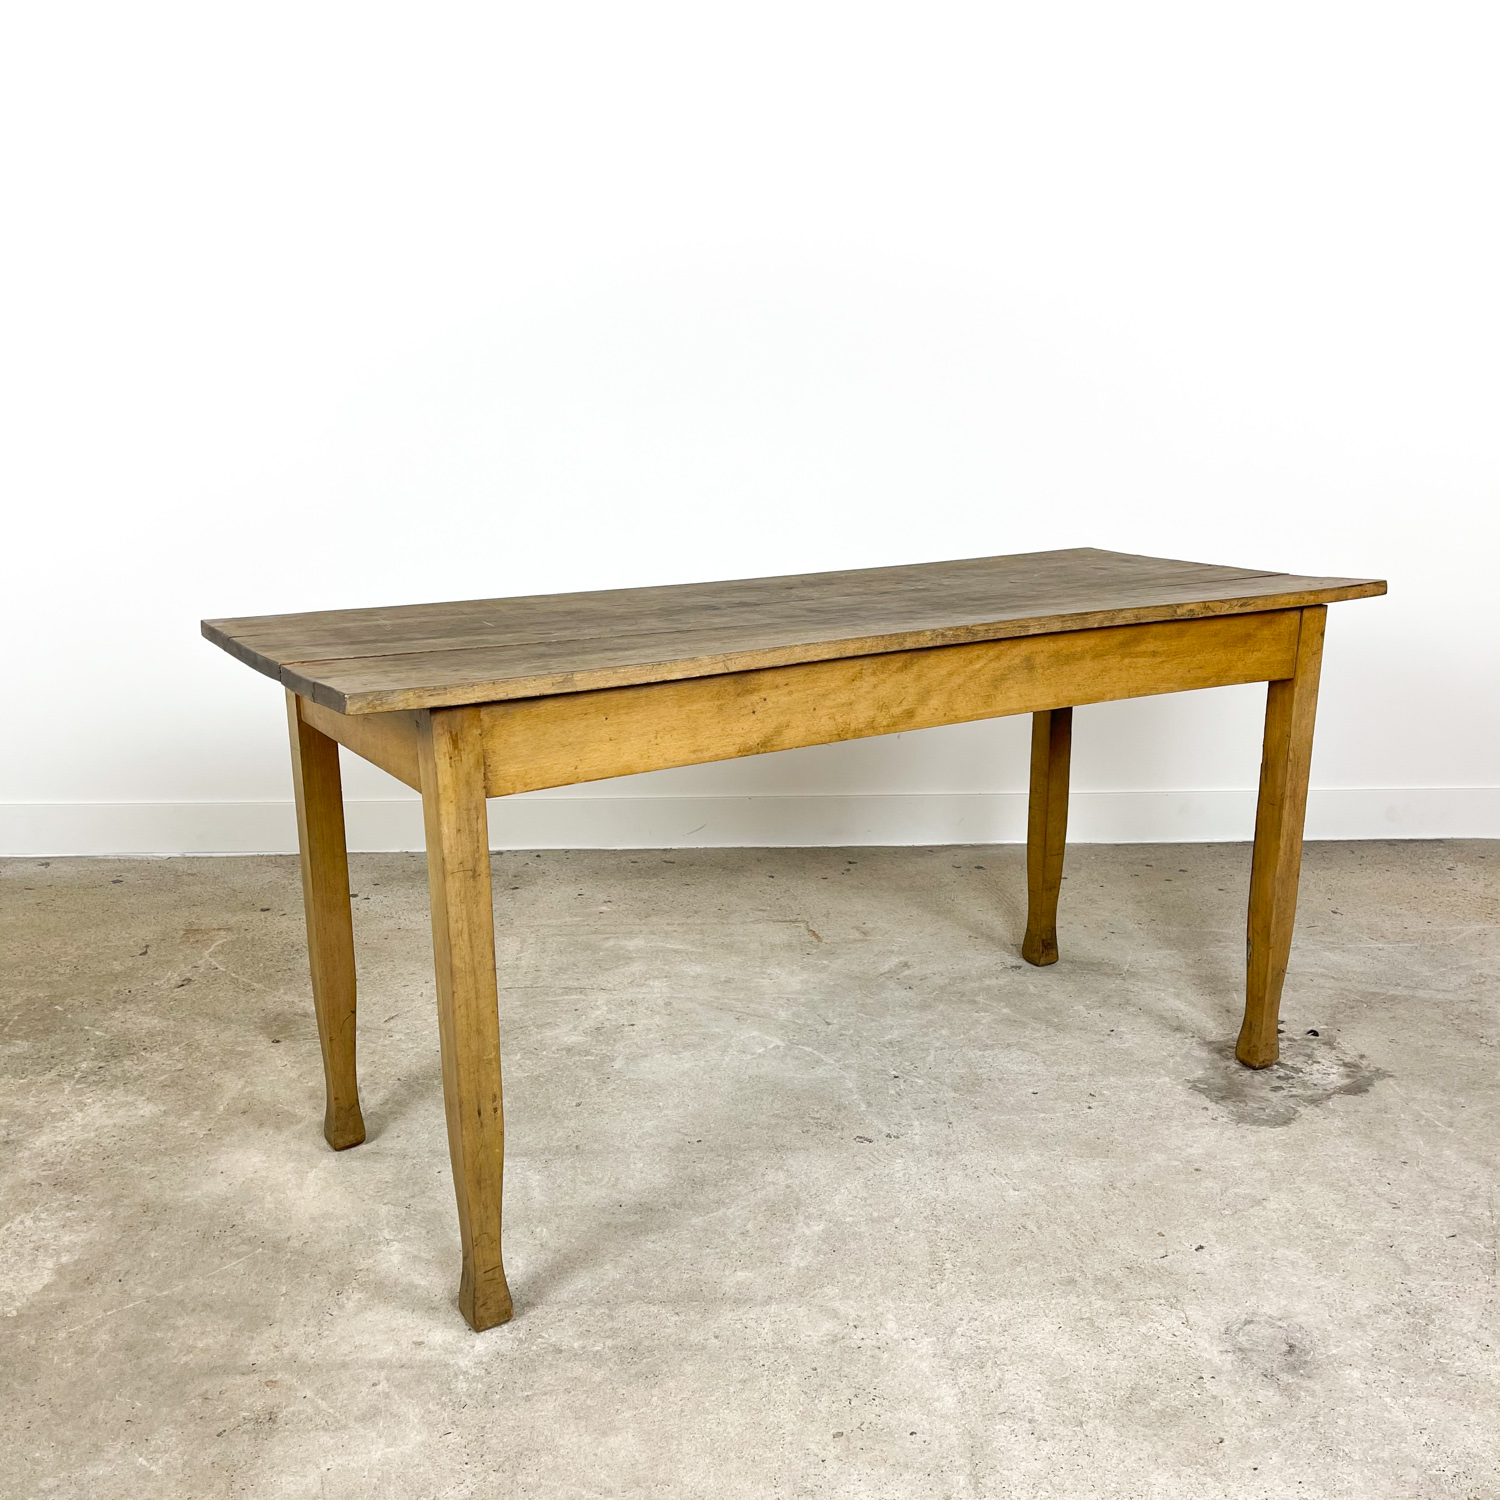 Vintage beech wooden table 160cm